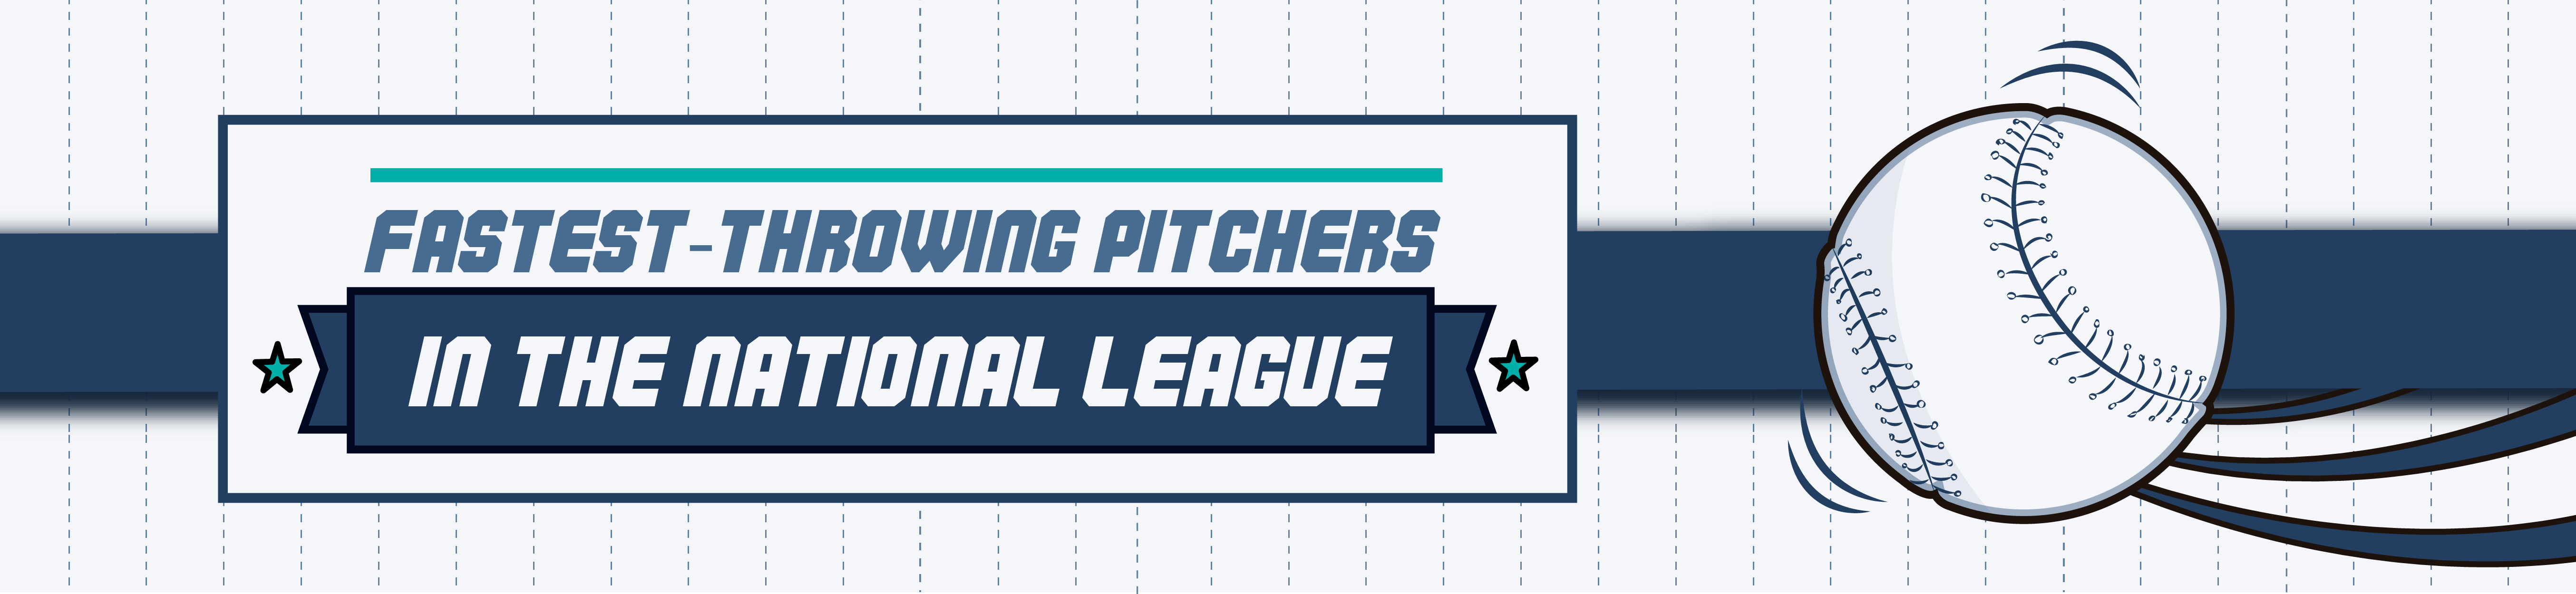 National_League_Pitchers_Header